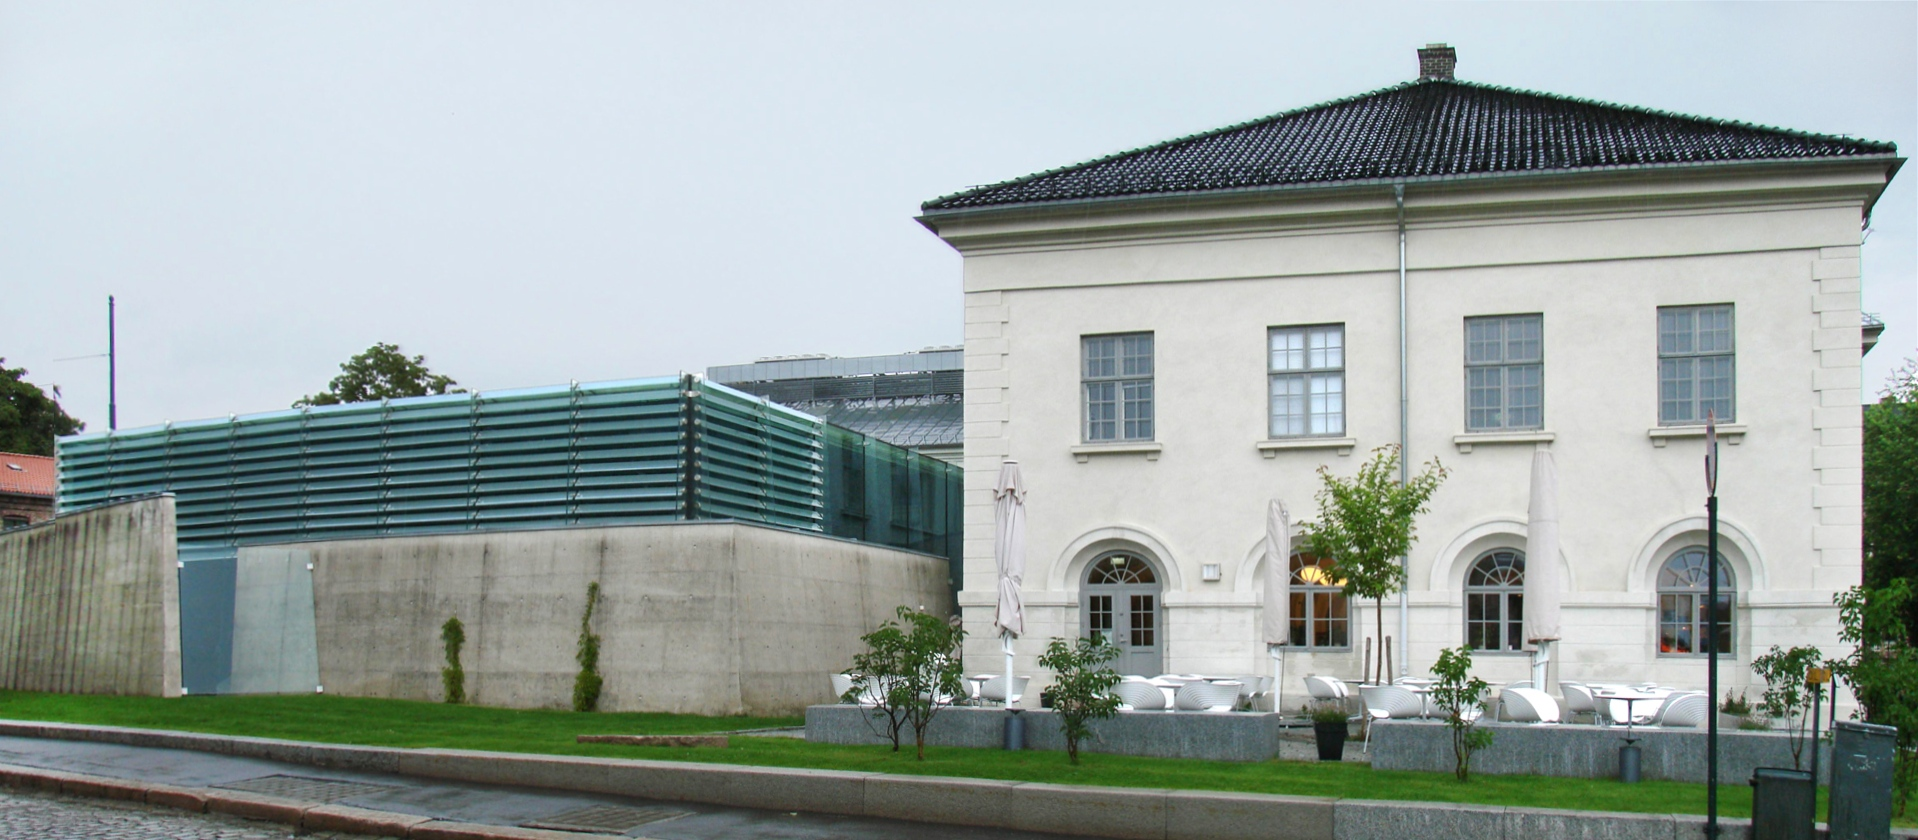 The National Museum of Oslo Or Museum of Cultural History-Oslo Tour